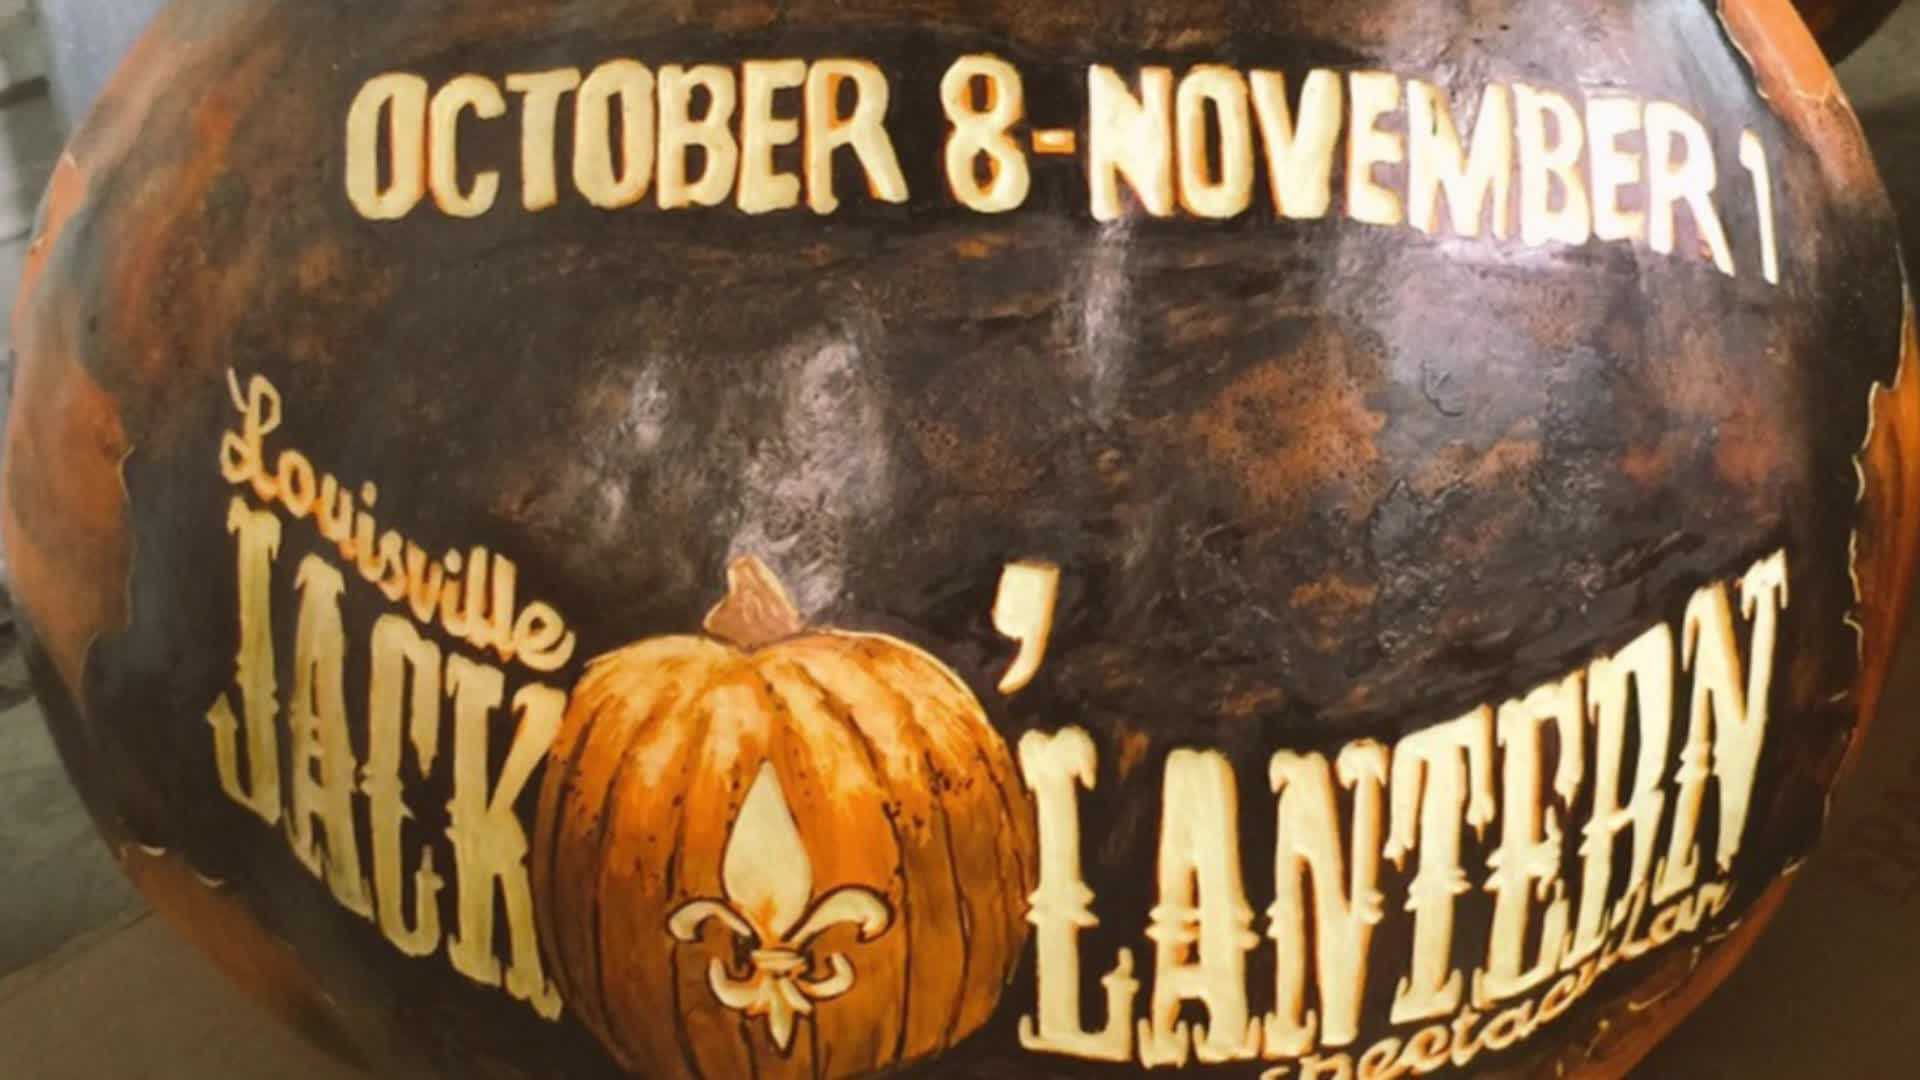 Joe Passafiume takes you behind-the-scene of the 3rd annual Jack-O-Lantern Spectacular